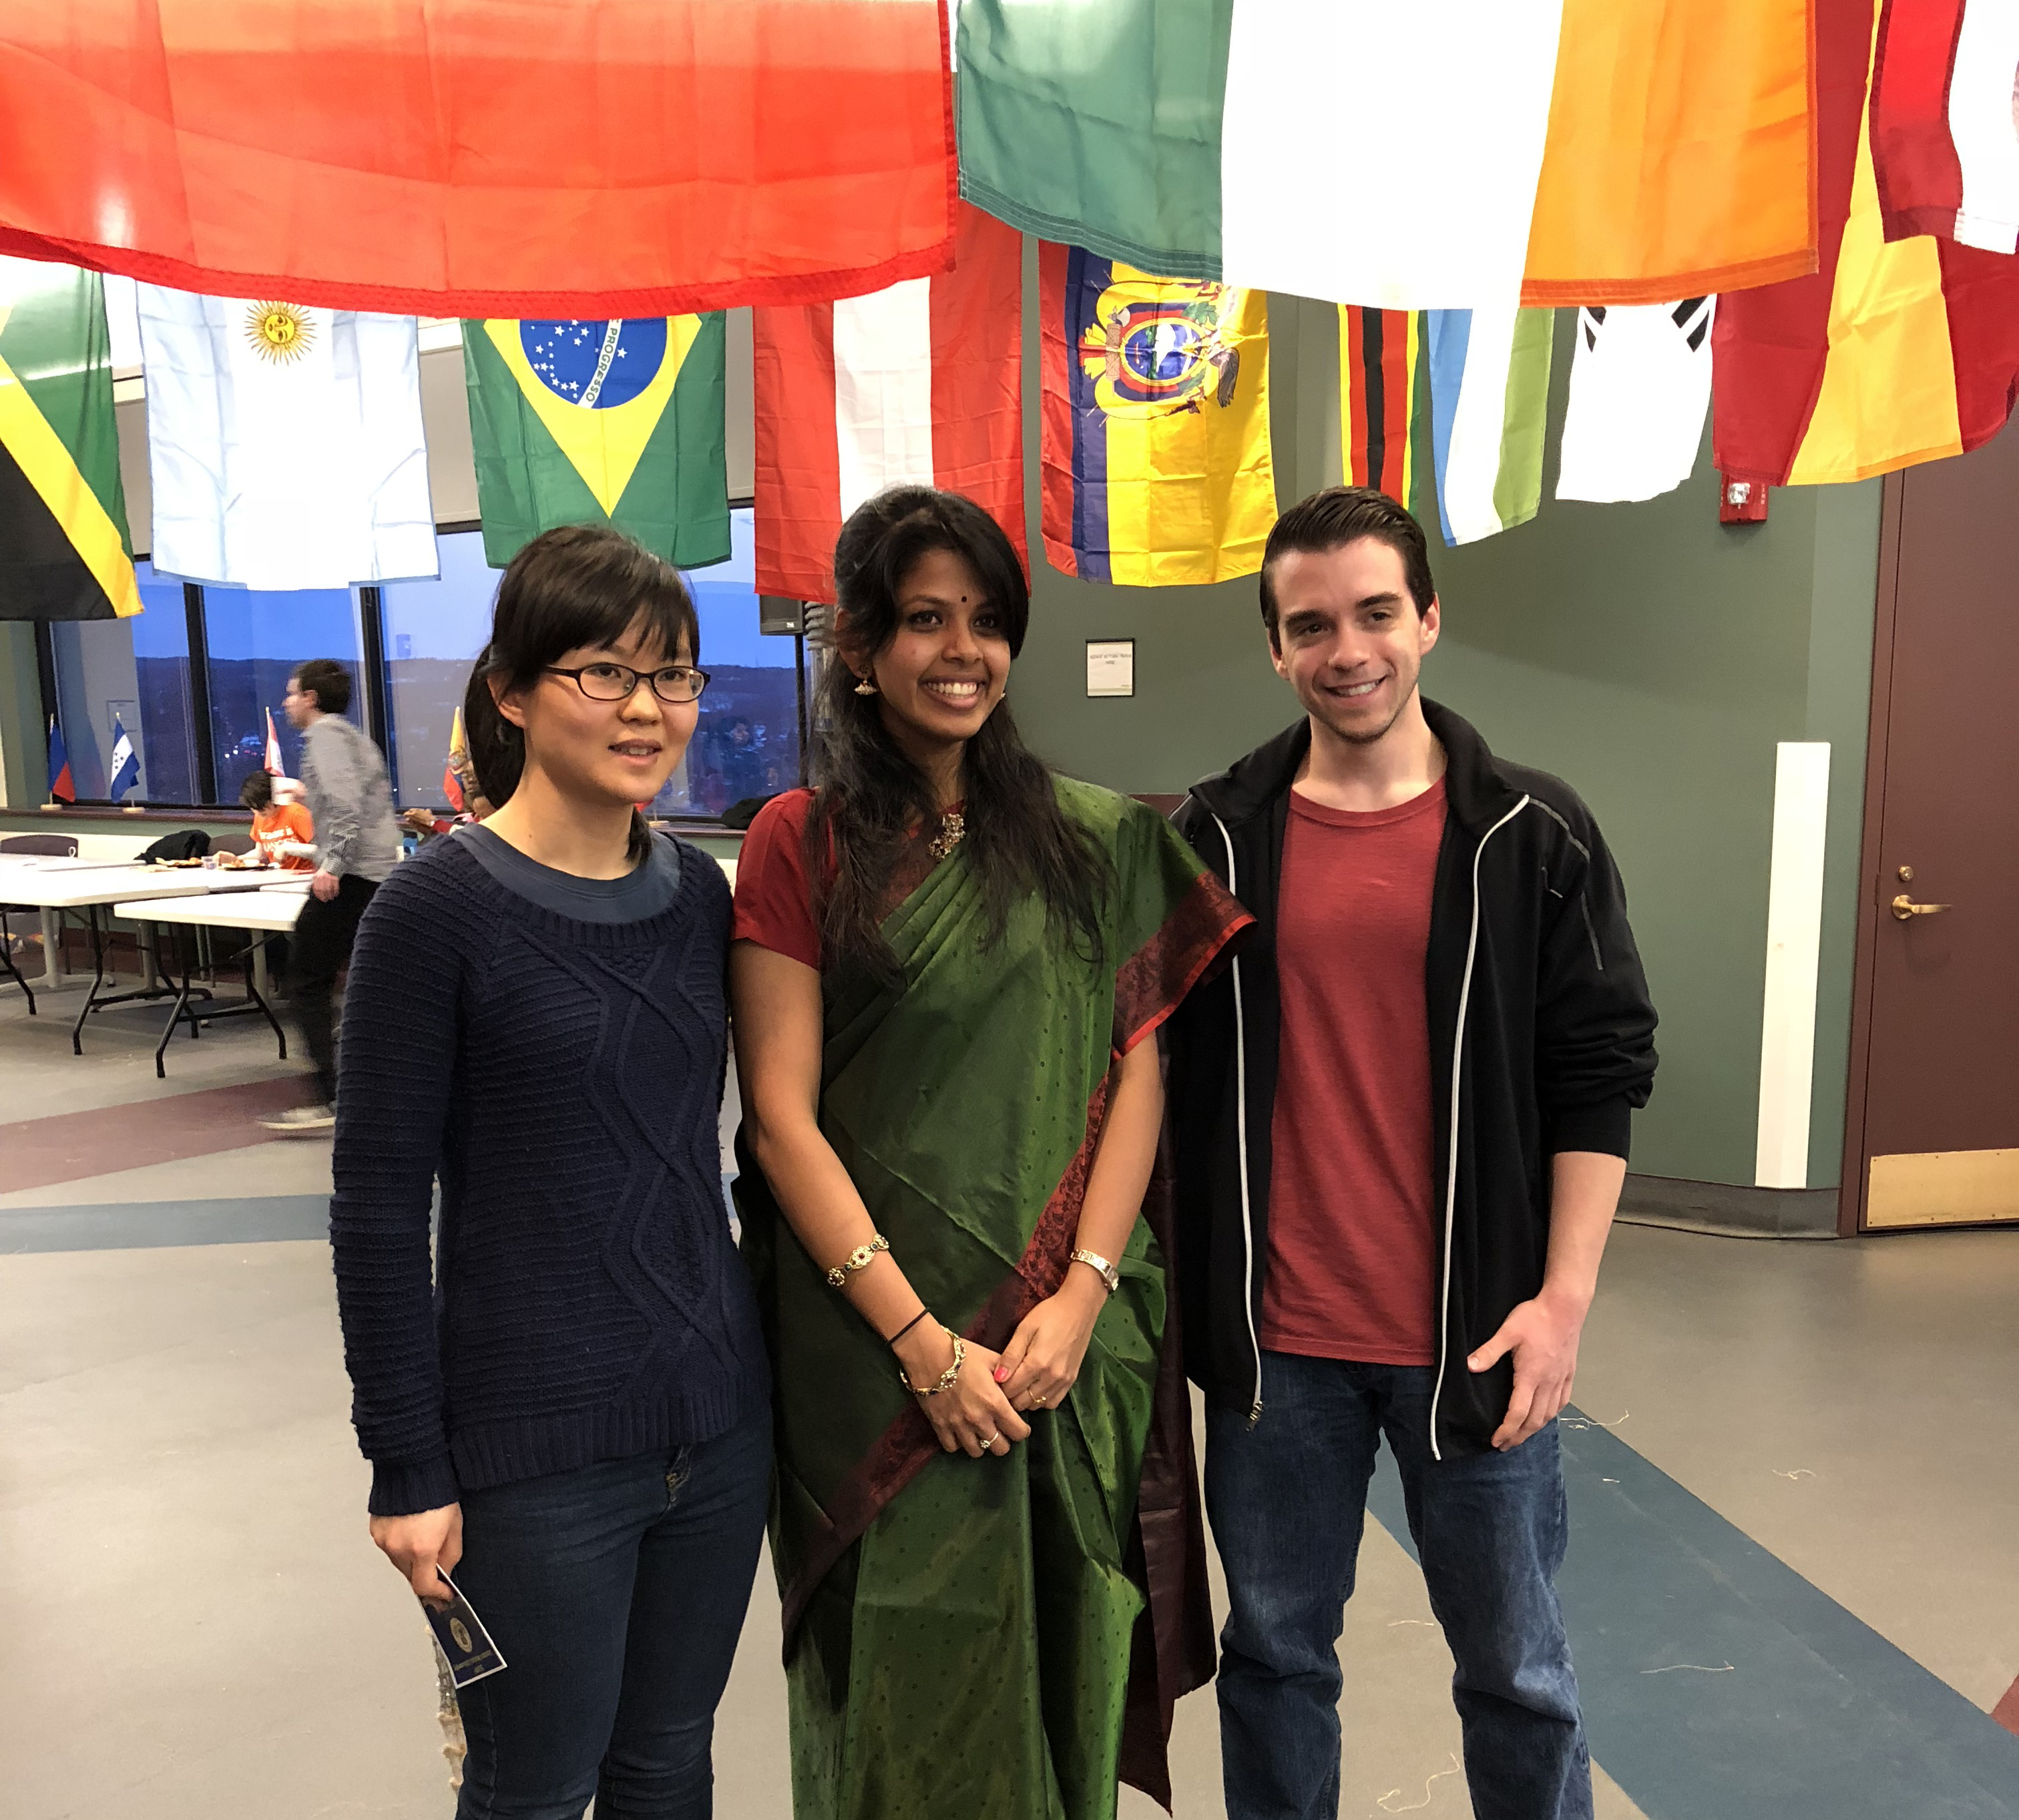 Sumana, coorganized the International Festival hosted by the International Student Association